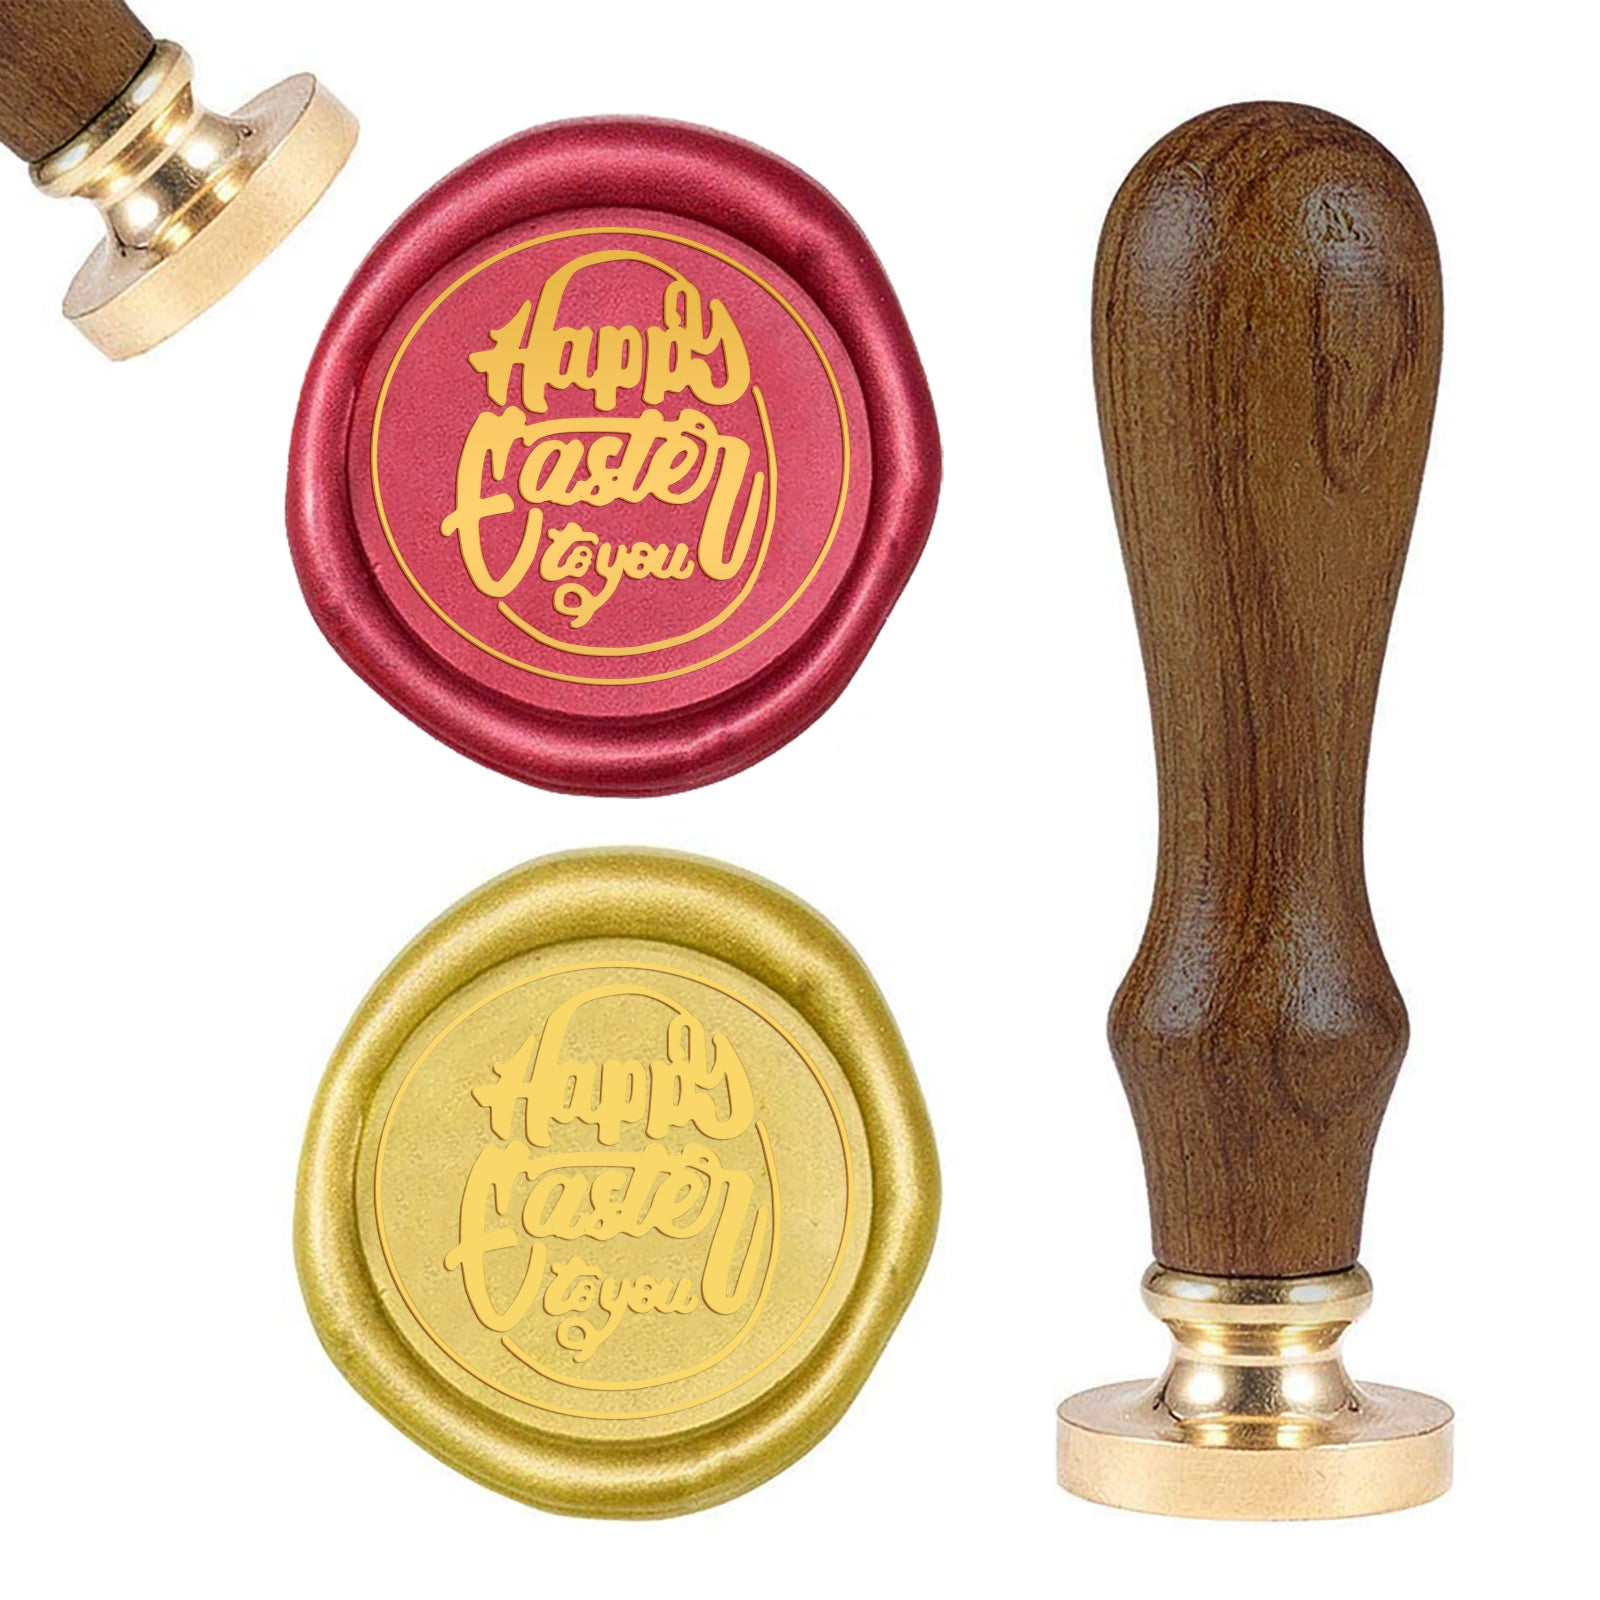 Happy Easter Wax Seal Stamp